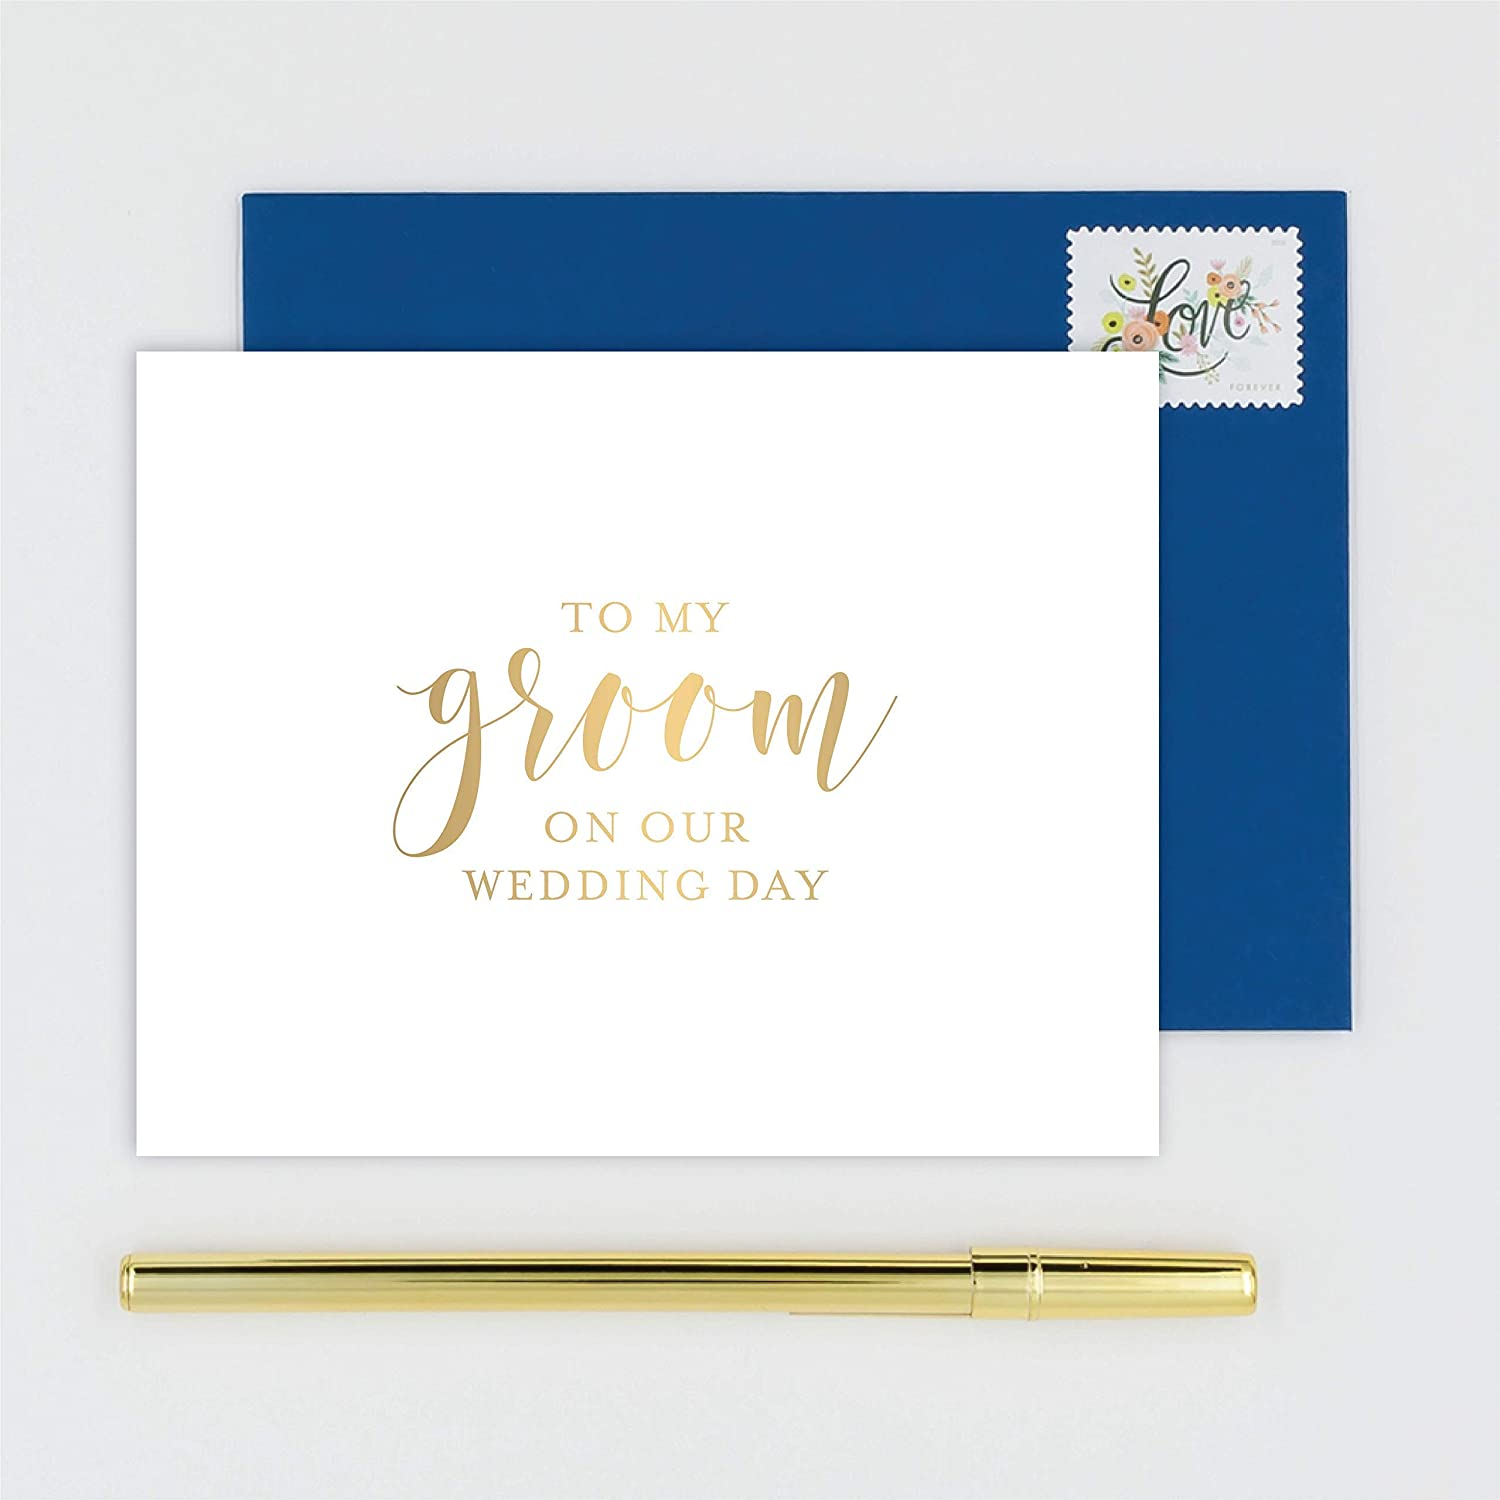 Amazon com to my groom on our wedding day card for husband handmade white card stamped with gold foil calligraphy design with navy blue envelope